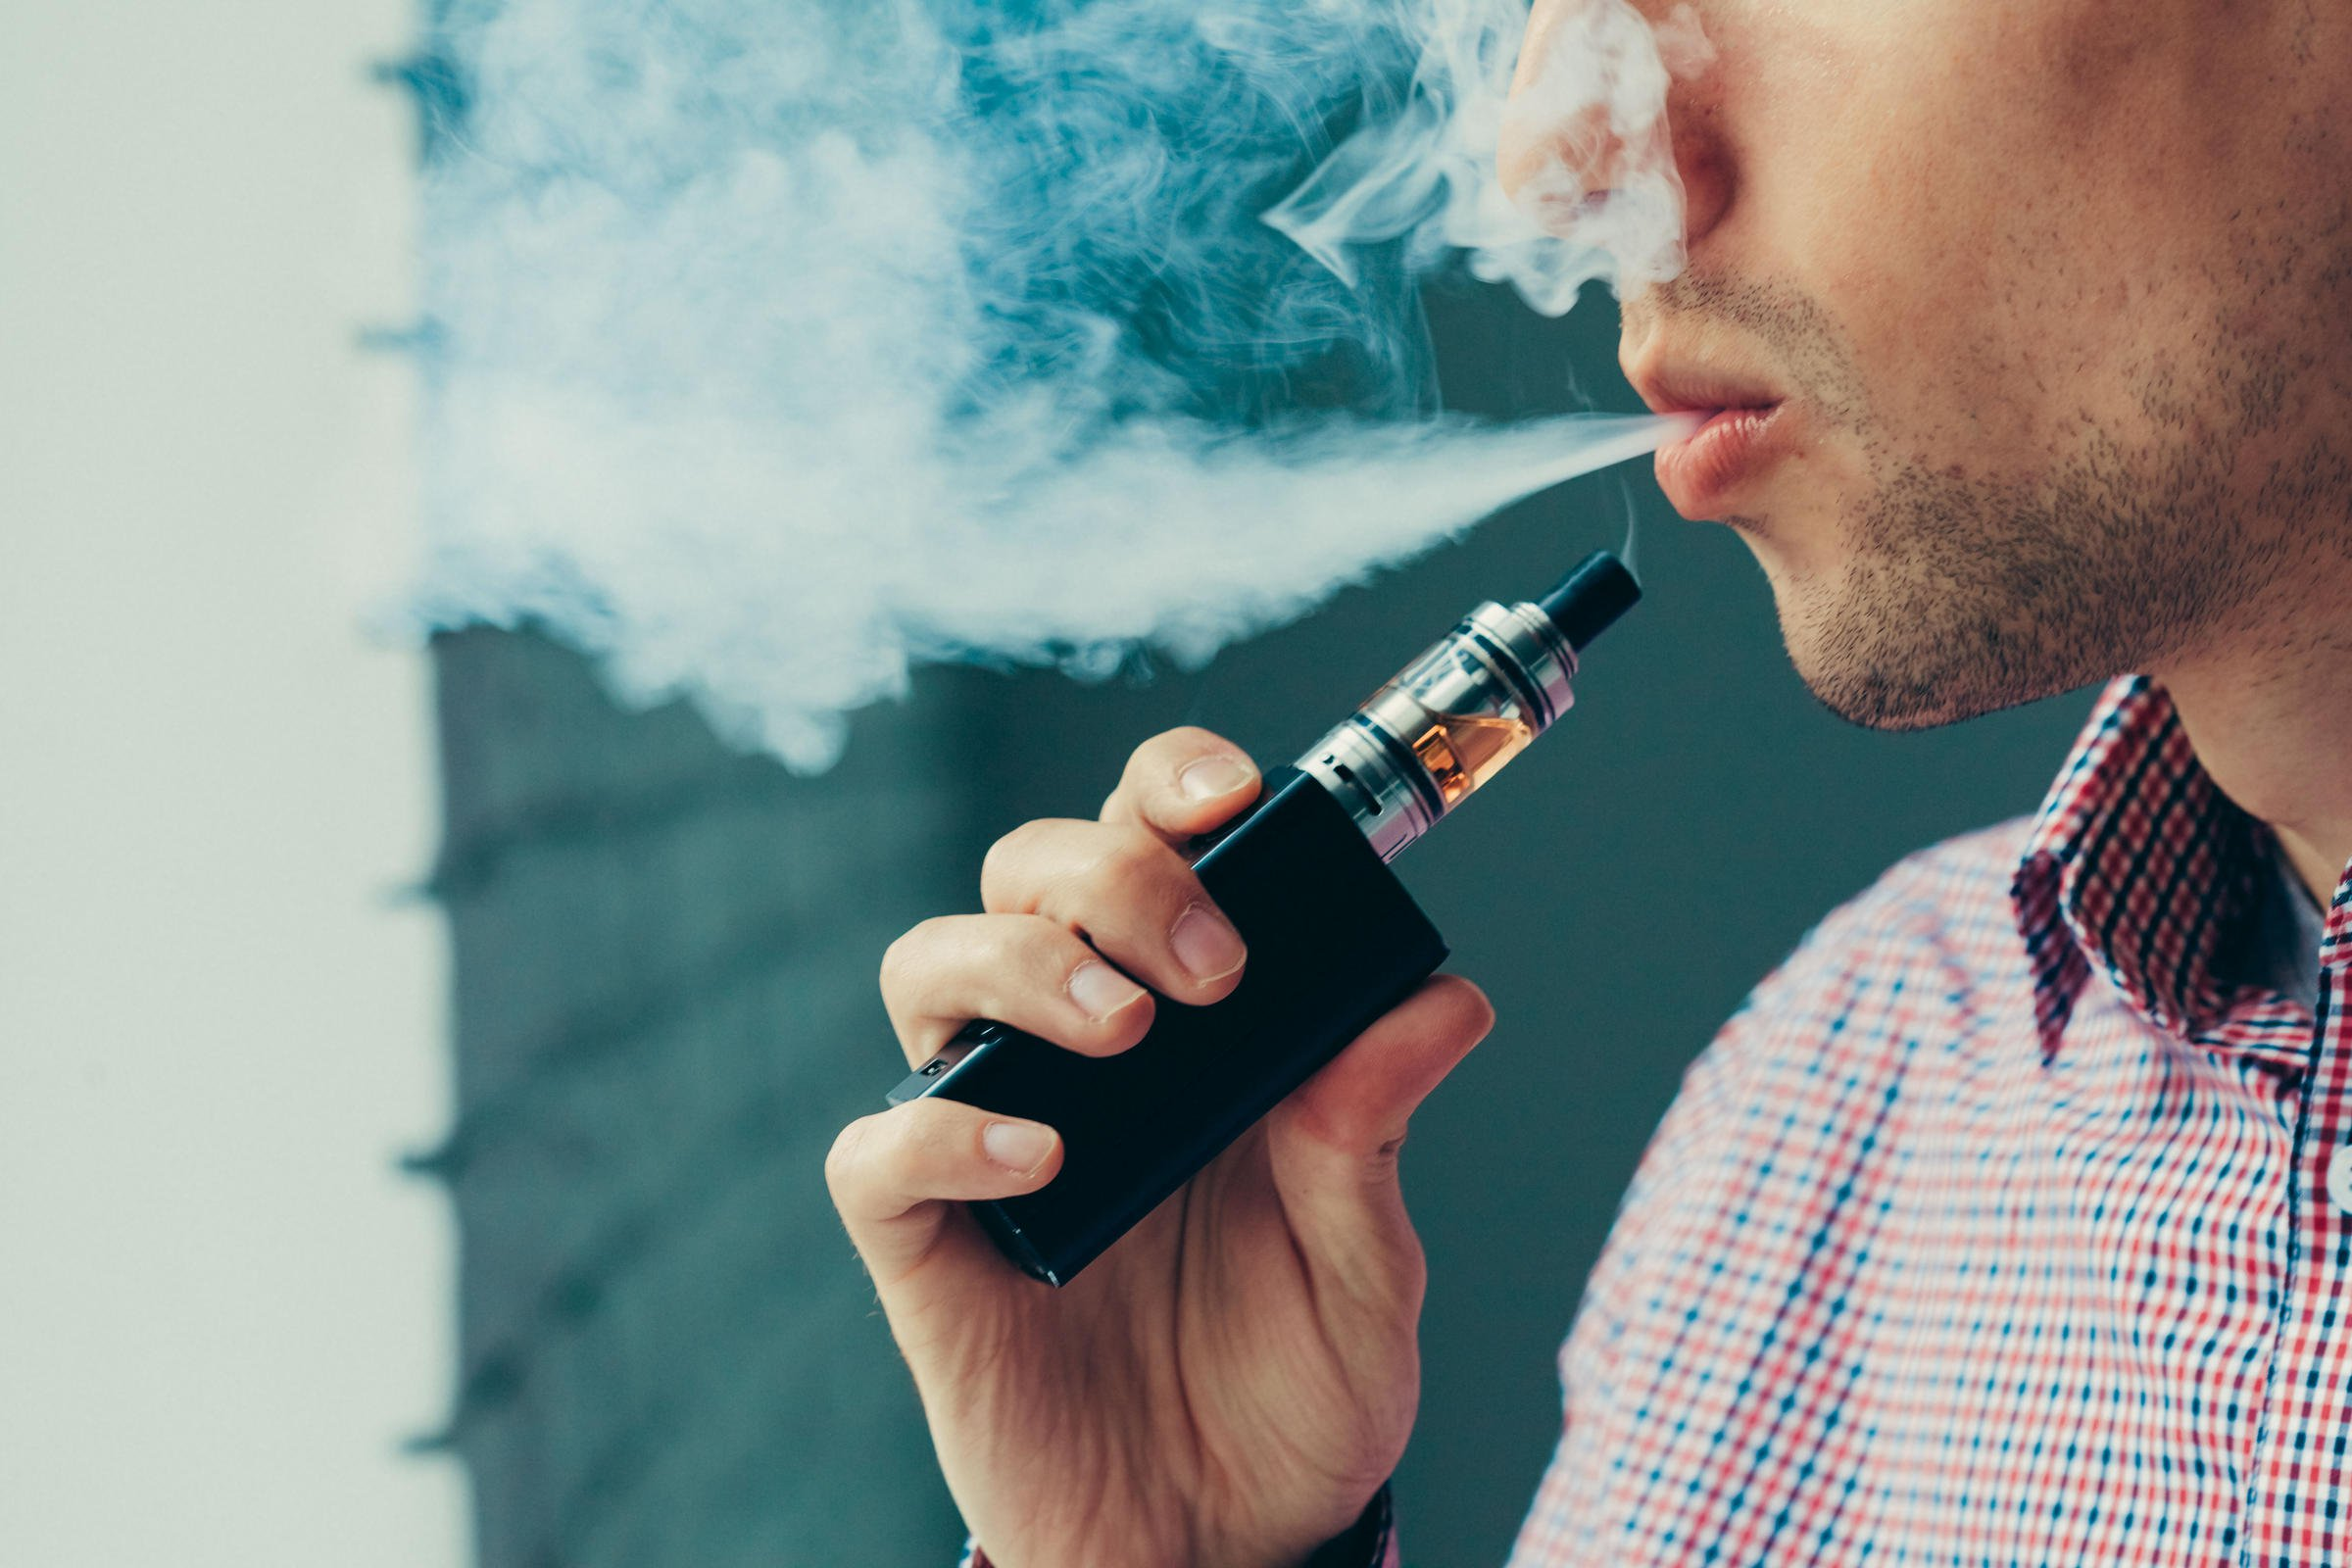 New condition hitting Utah harder than other states leading Vapers on ventilators